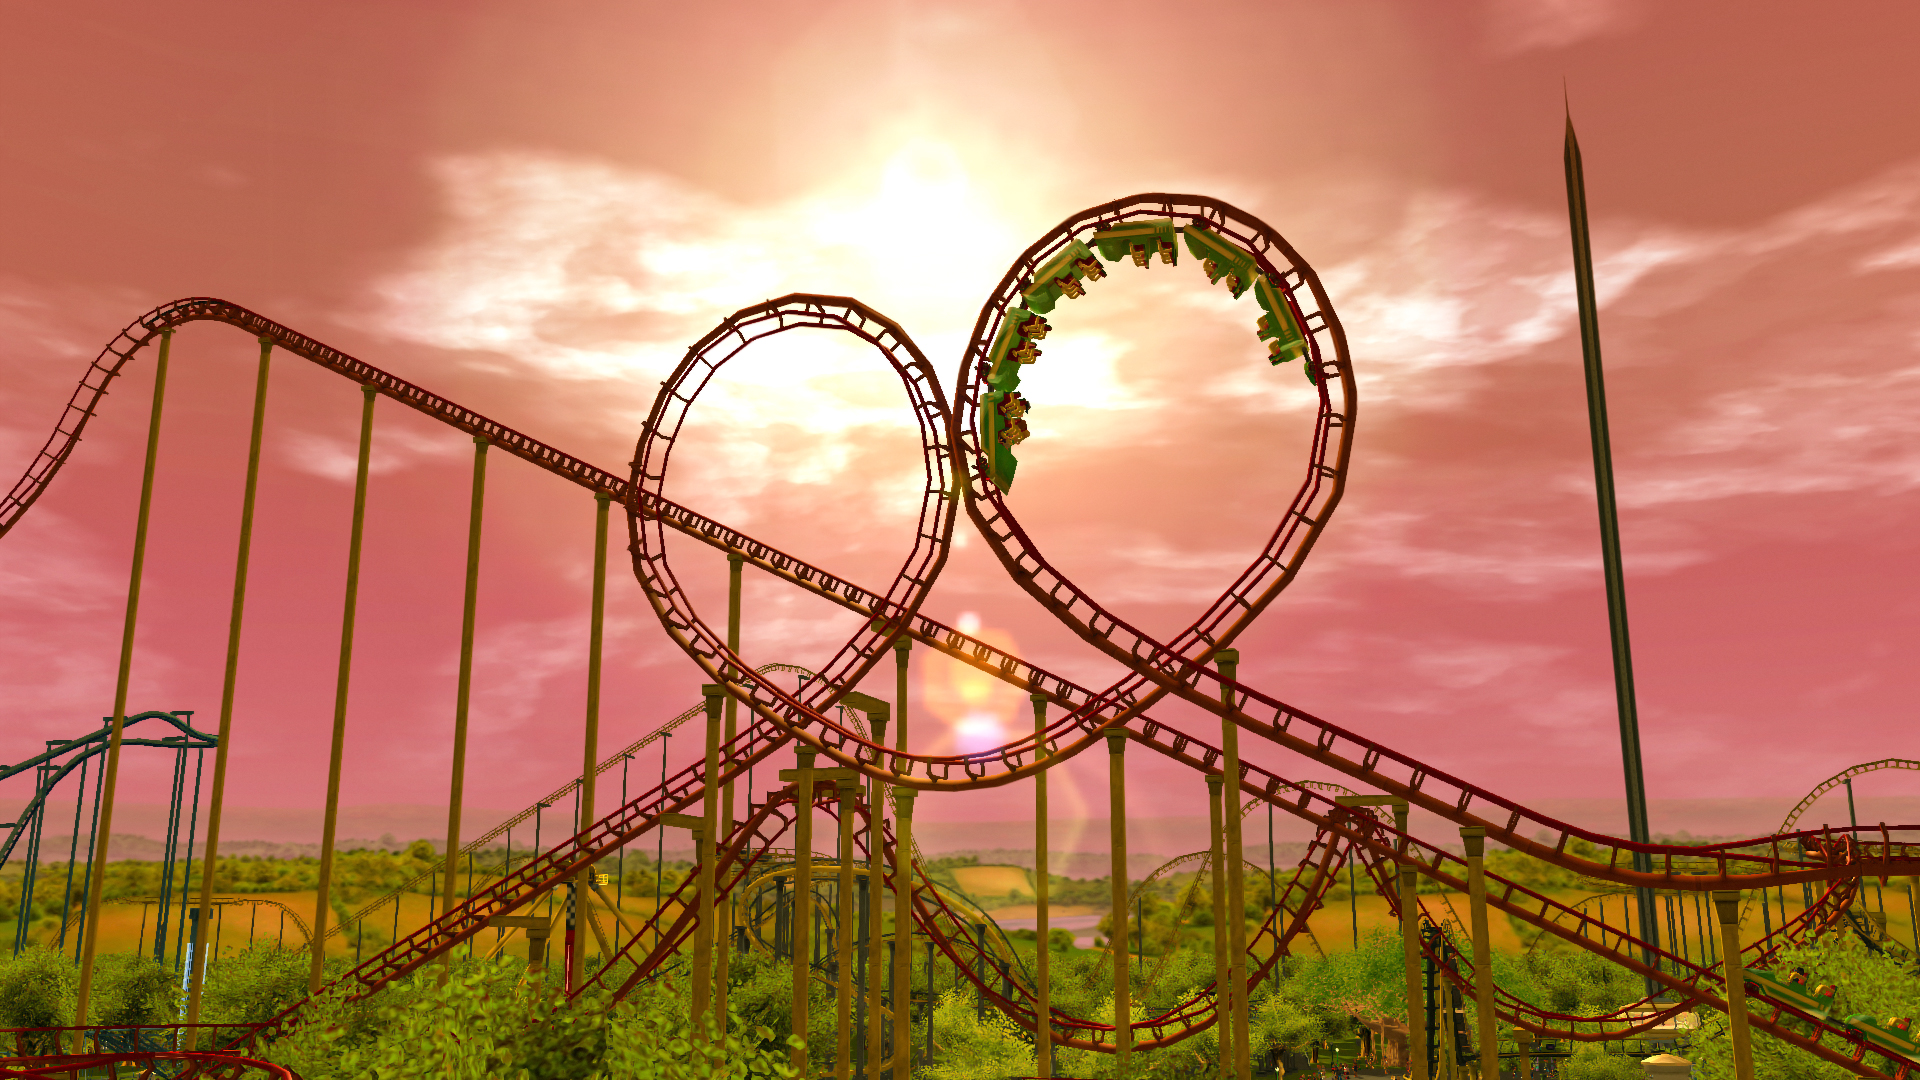 RollerCoaster Tycoon 3: Complete Edition brings the fun this September 24